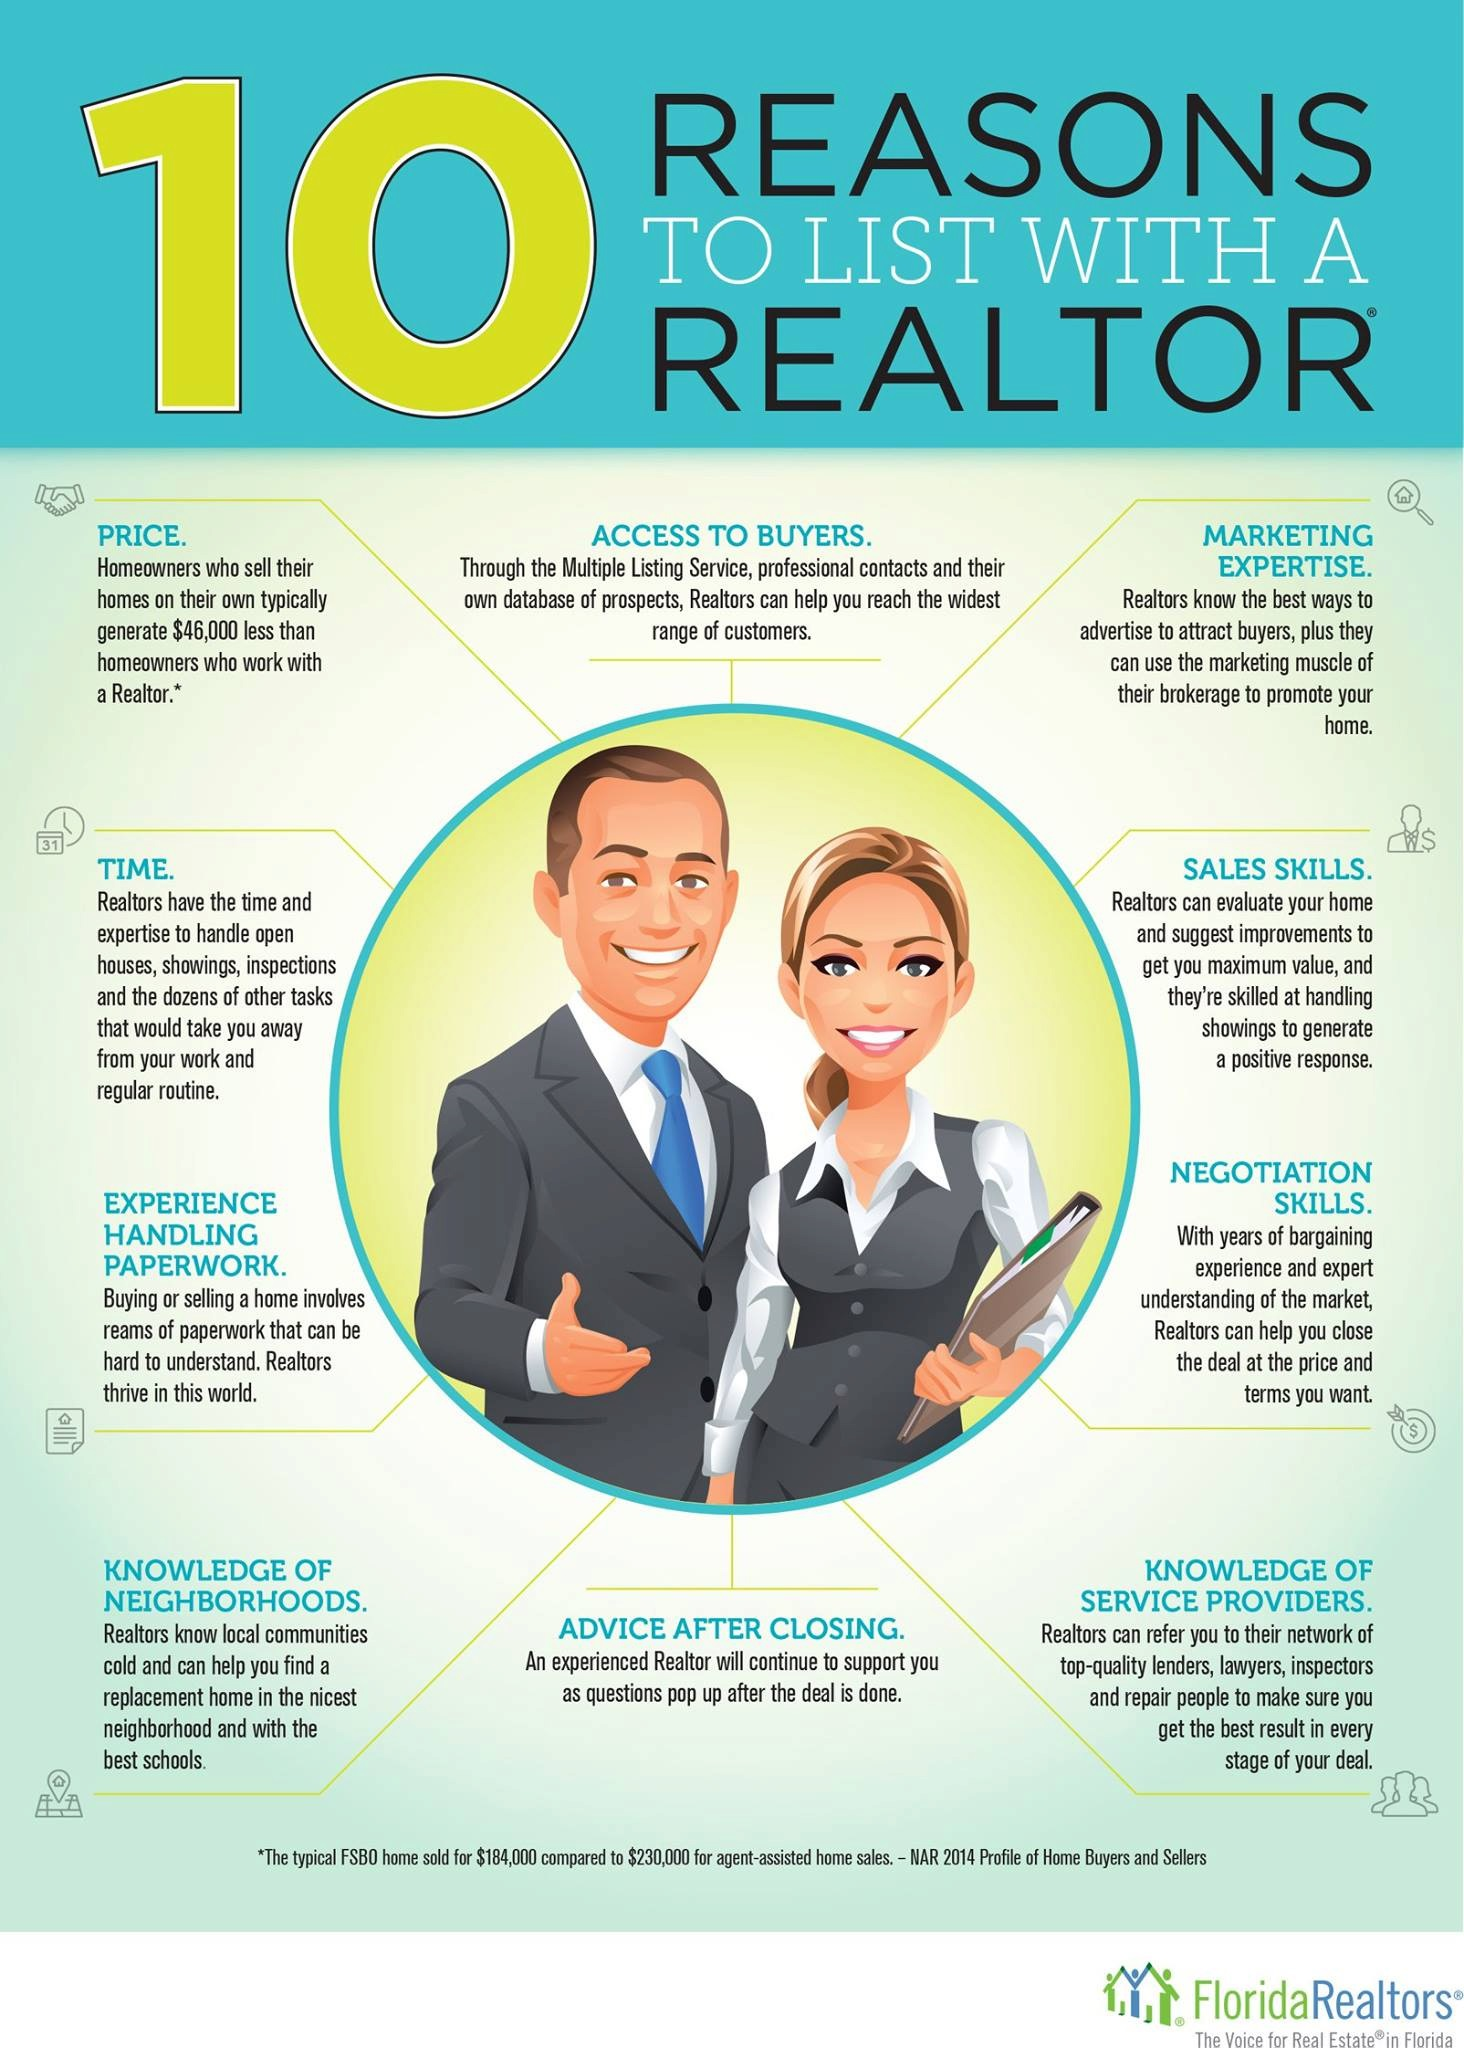 10 reasons to list with a Realtor Pensacola Real Estate Agents